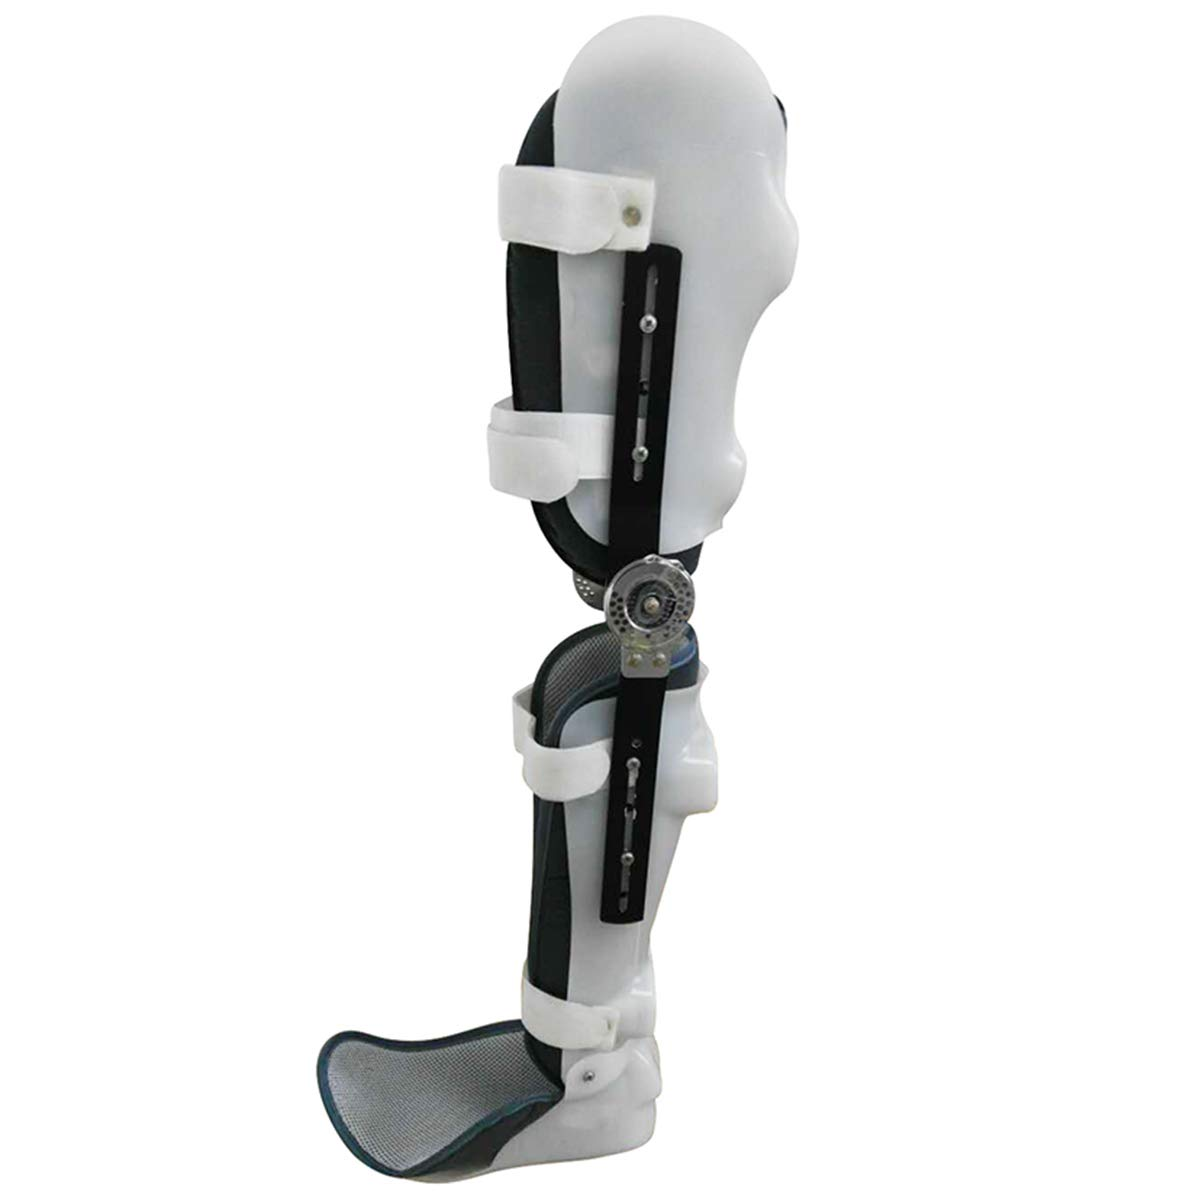 FULI Adjustable Knee Joint Brace, Support Thigh, Calf Ankle Joint Protection, postoperative Fracture Rehabilitation Equipment (Right)